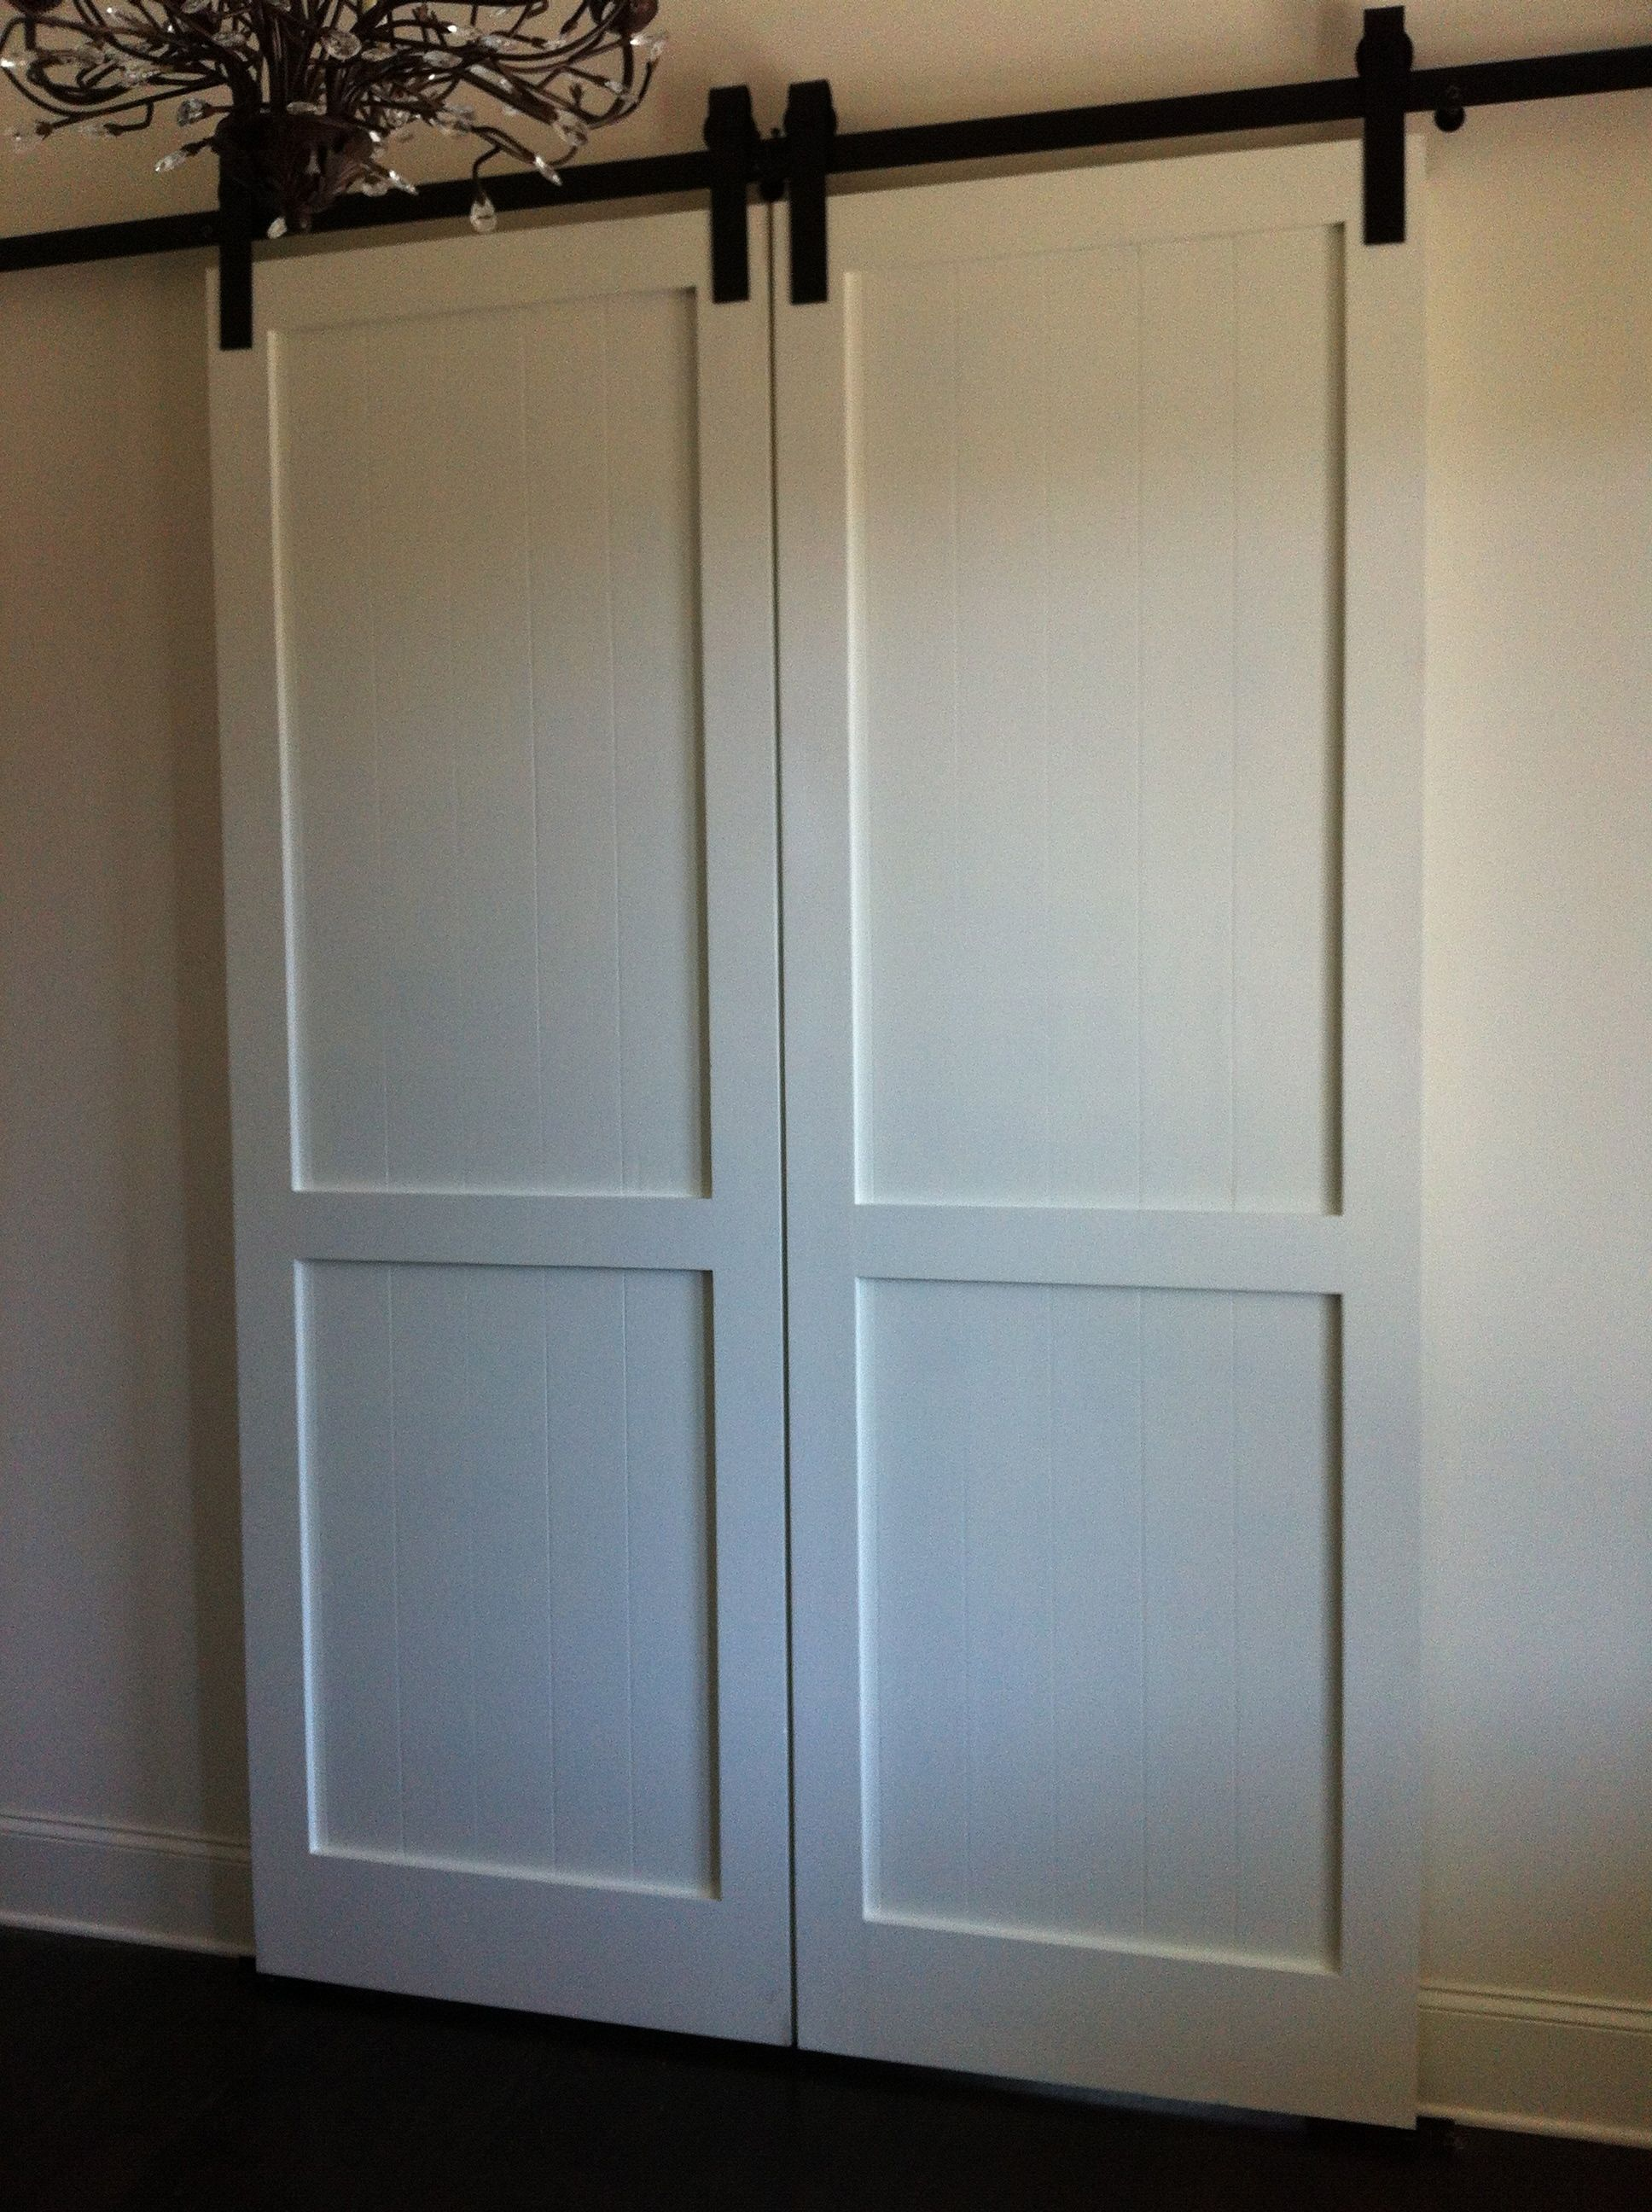 custom barn doors double doors inspiration ideas. Black Bedroom Furniture Sets. Home Design Ideas